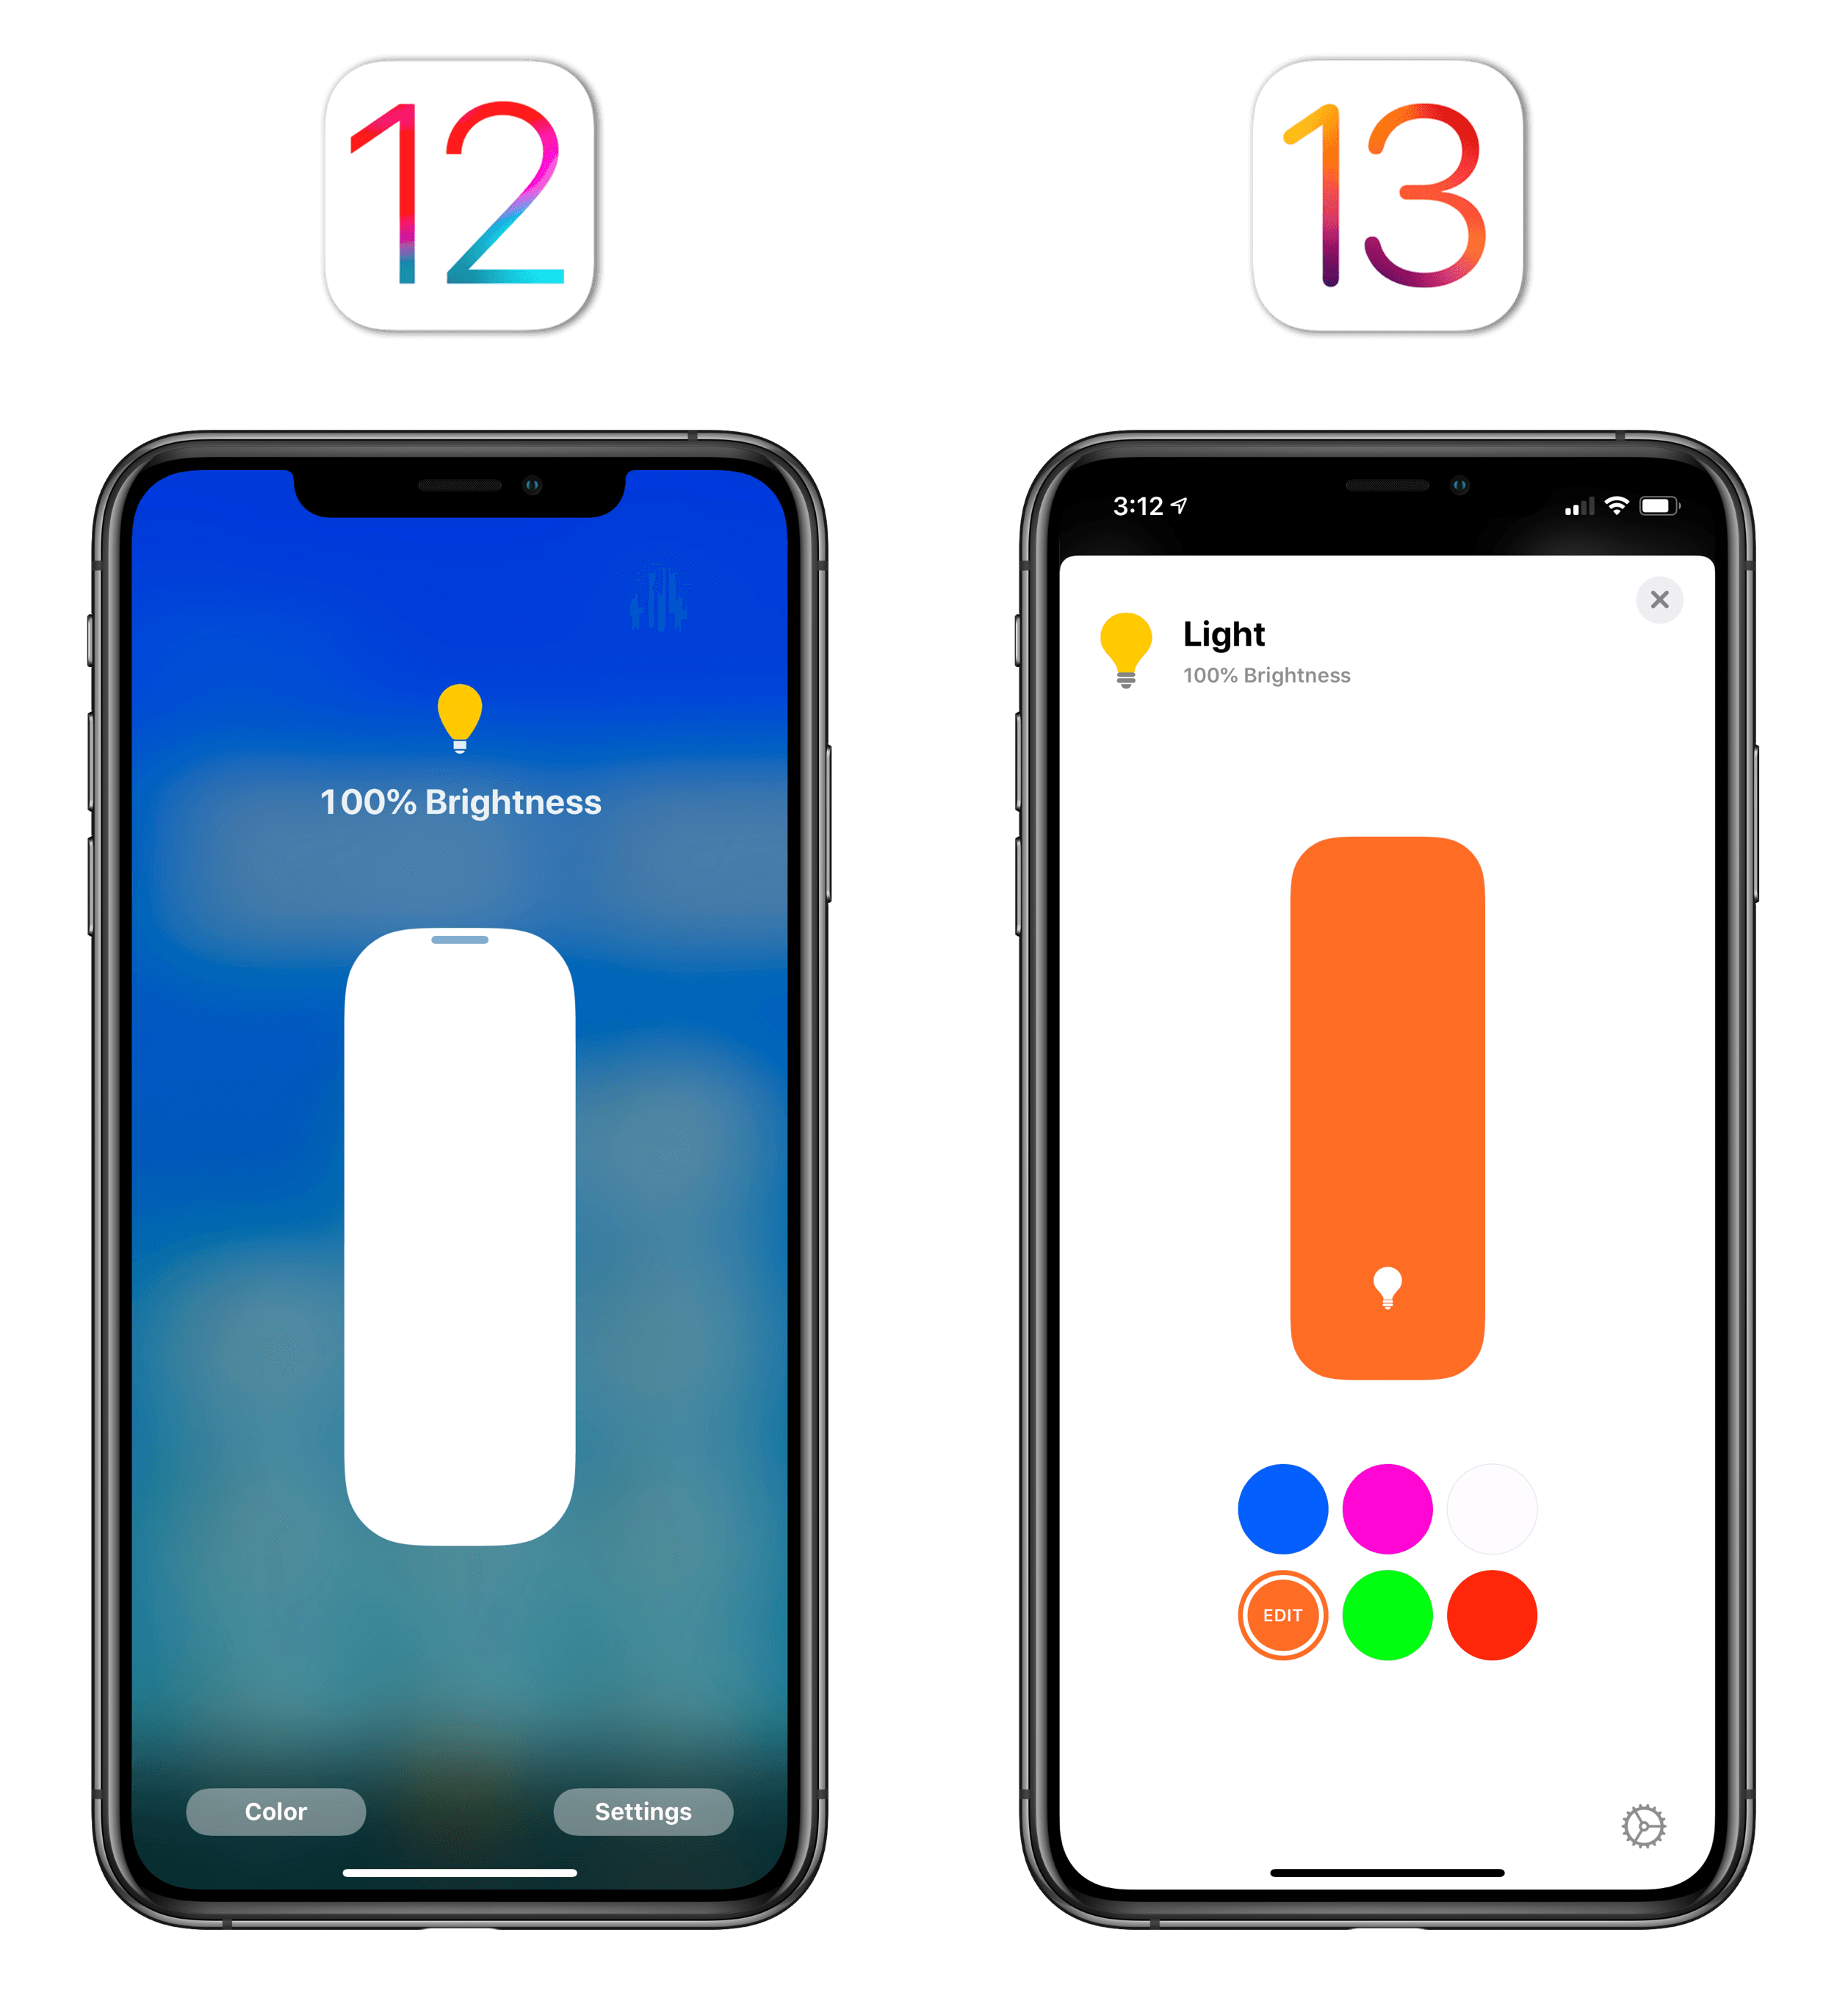 In iOS 13.1, there are also new accessory icons to choose from, which animate slightly when you interact with them. It's a nice touch.